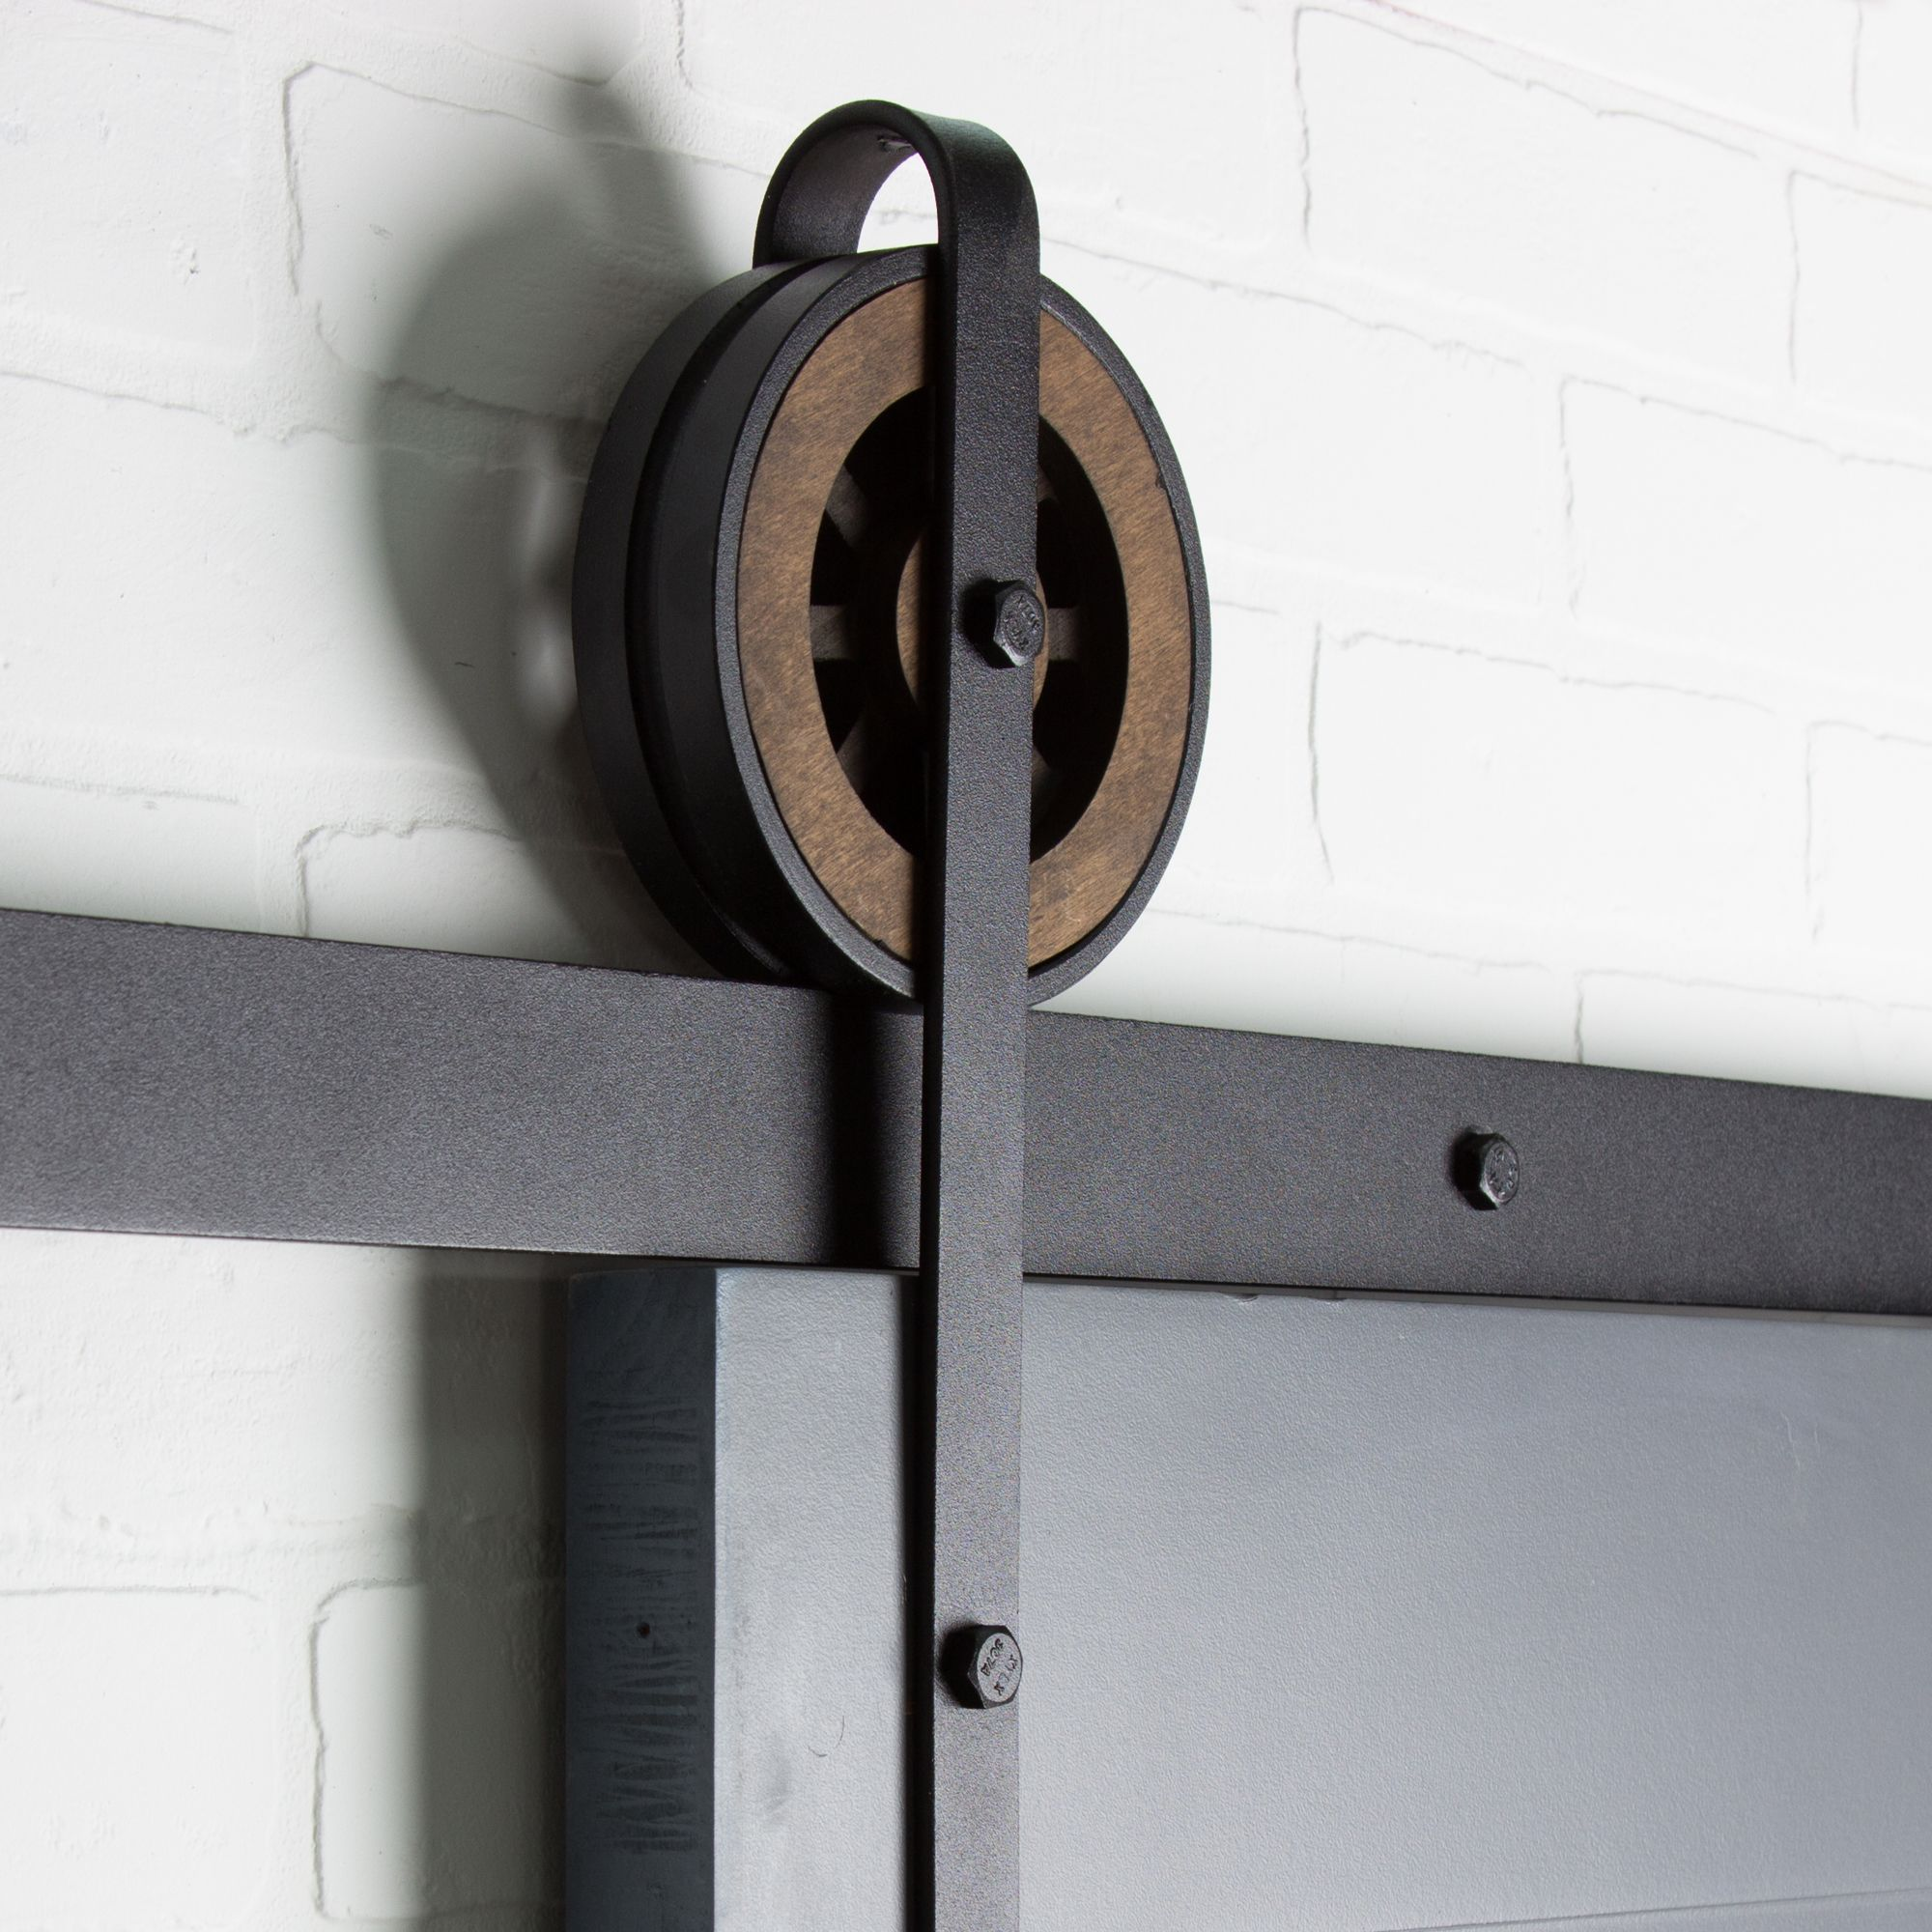 Handcrafted and approved by Artisans - our Artisan Barn Door Hardware is the perfect combination of steel, wood and vintage straps. Free shipping available.